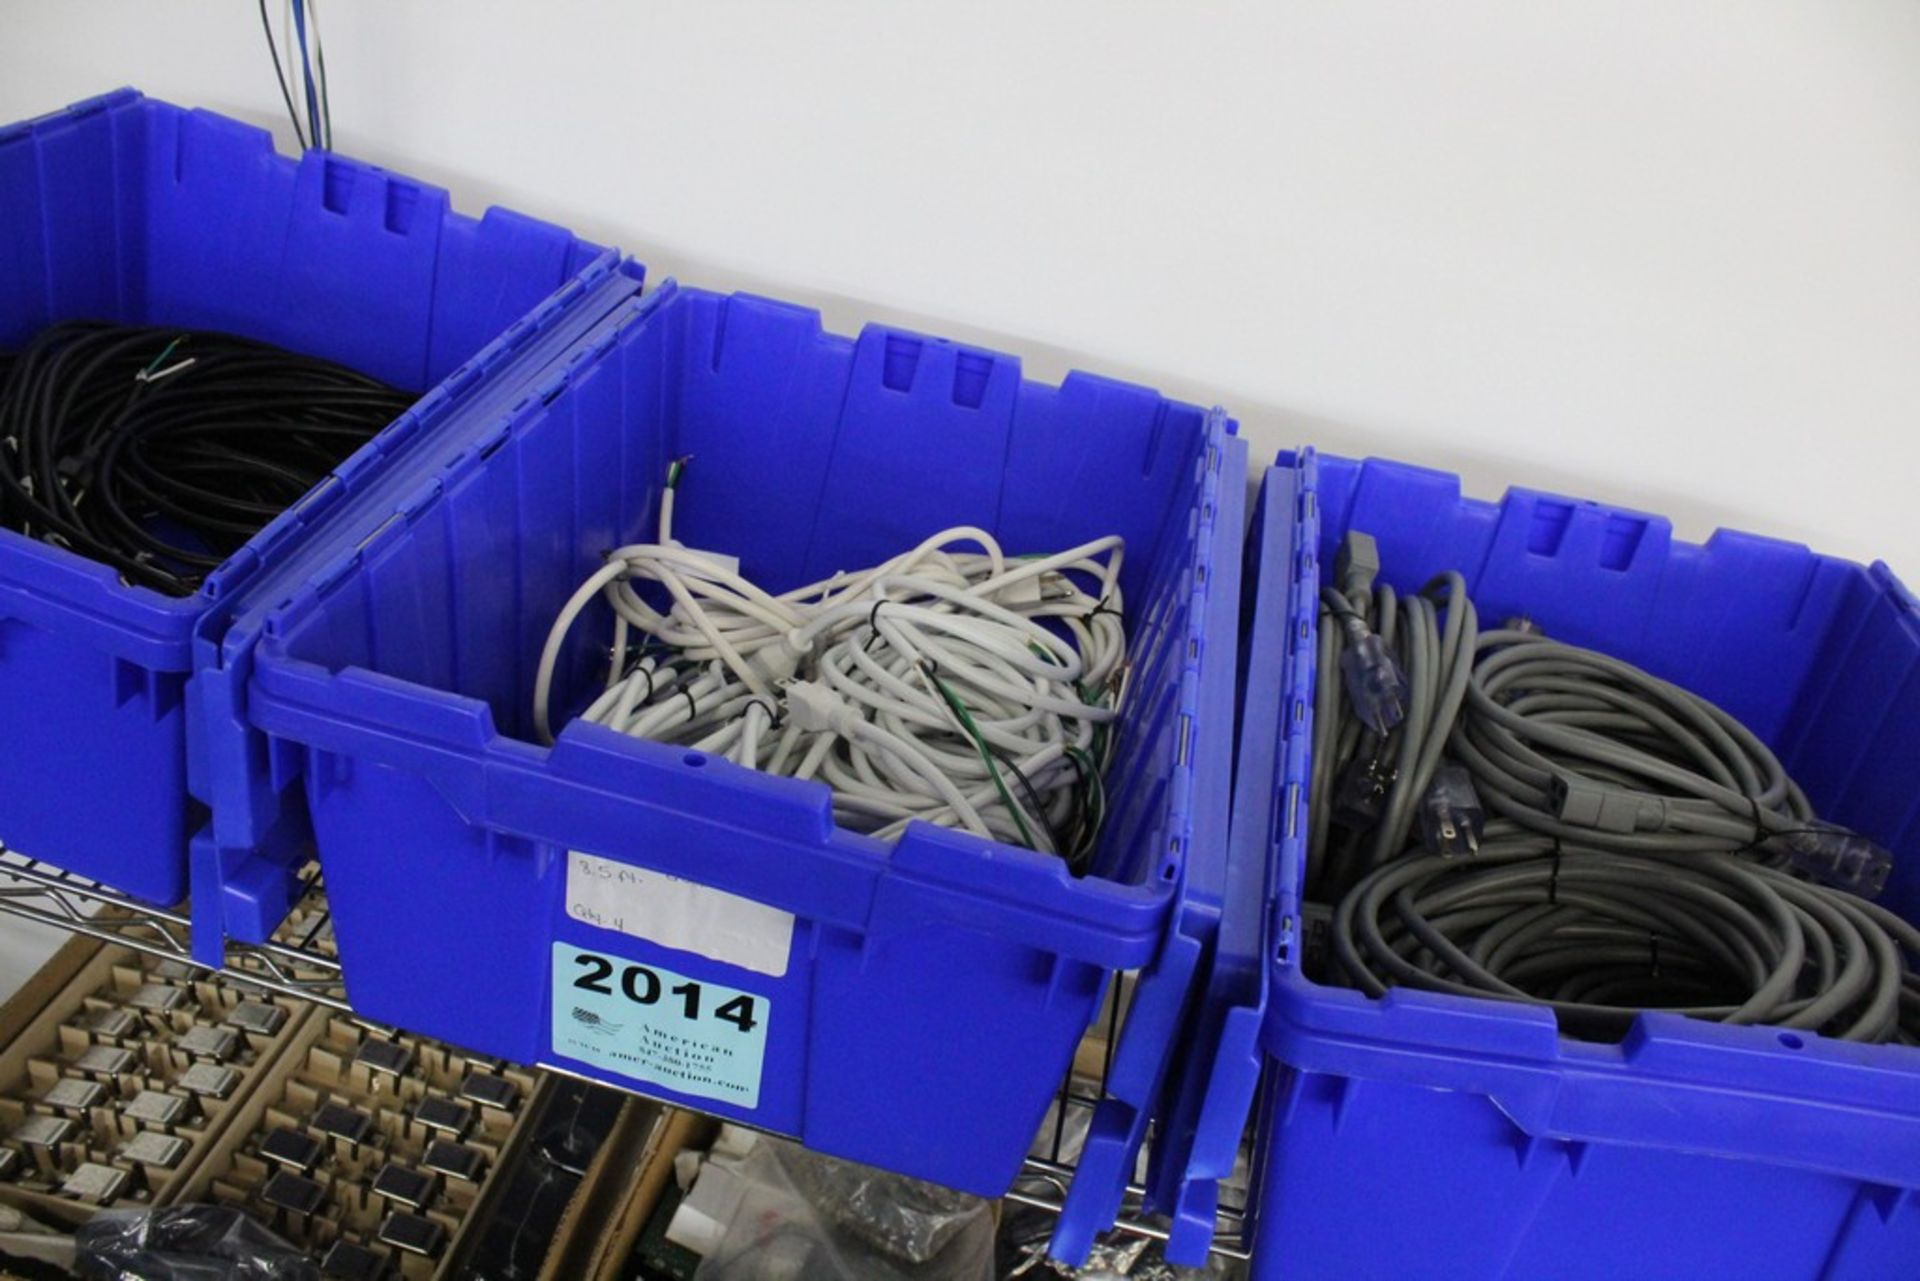 Lot 2014 - WIRING COMPONENTS ON SHELF